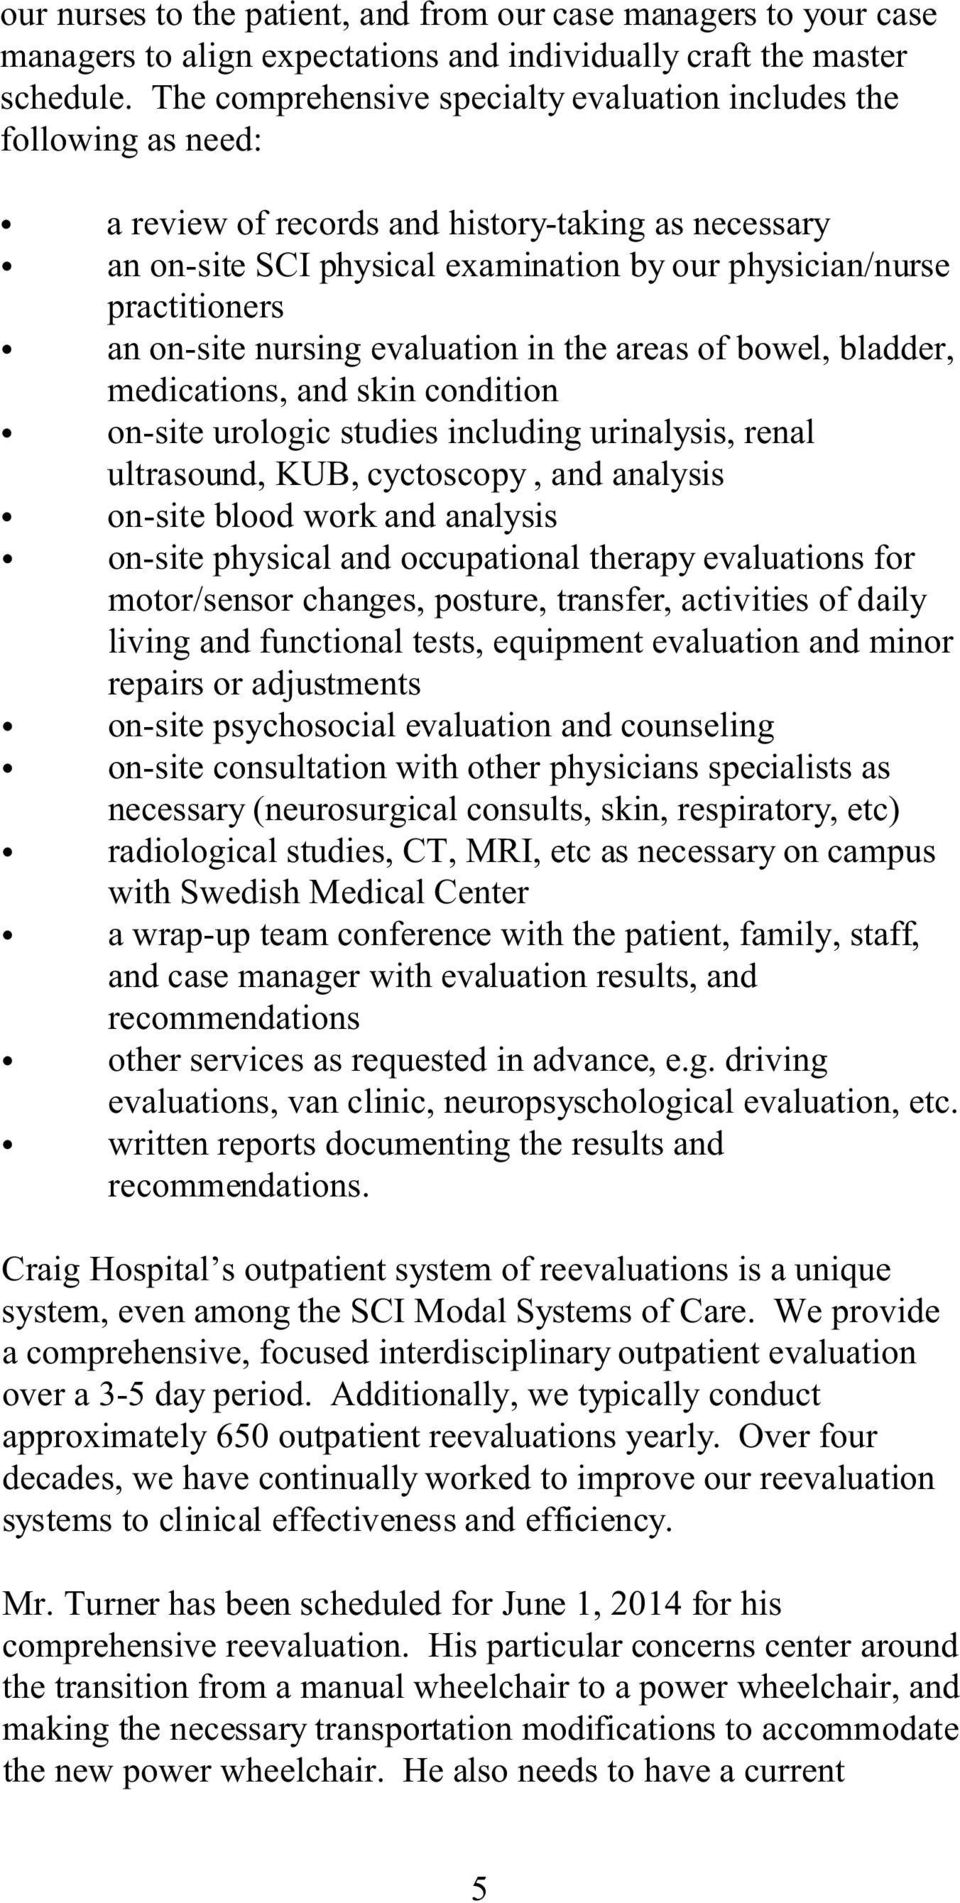 on-site nursing evaluation in the areas of bowel, bladder, medications, and skin condition on-site urologic studies including urinalysis, renal ultrasound, KUB, cyctoscopy, and analysis on-site blood